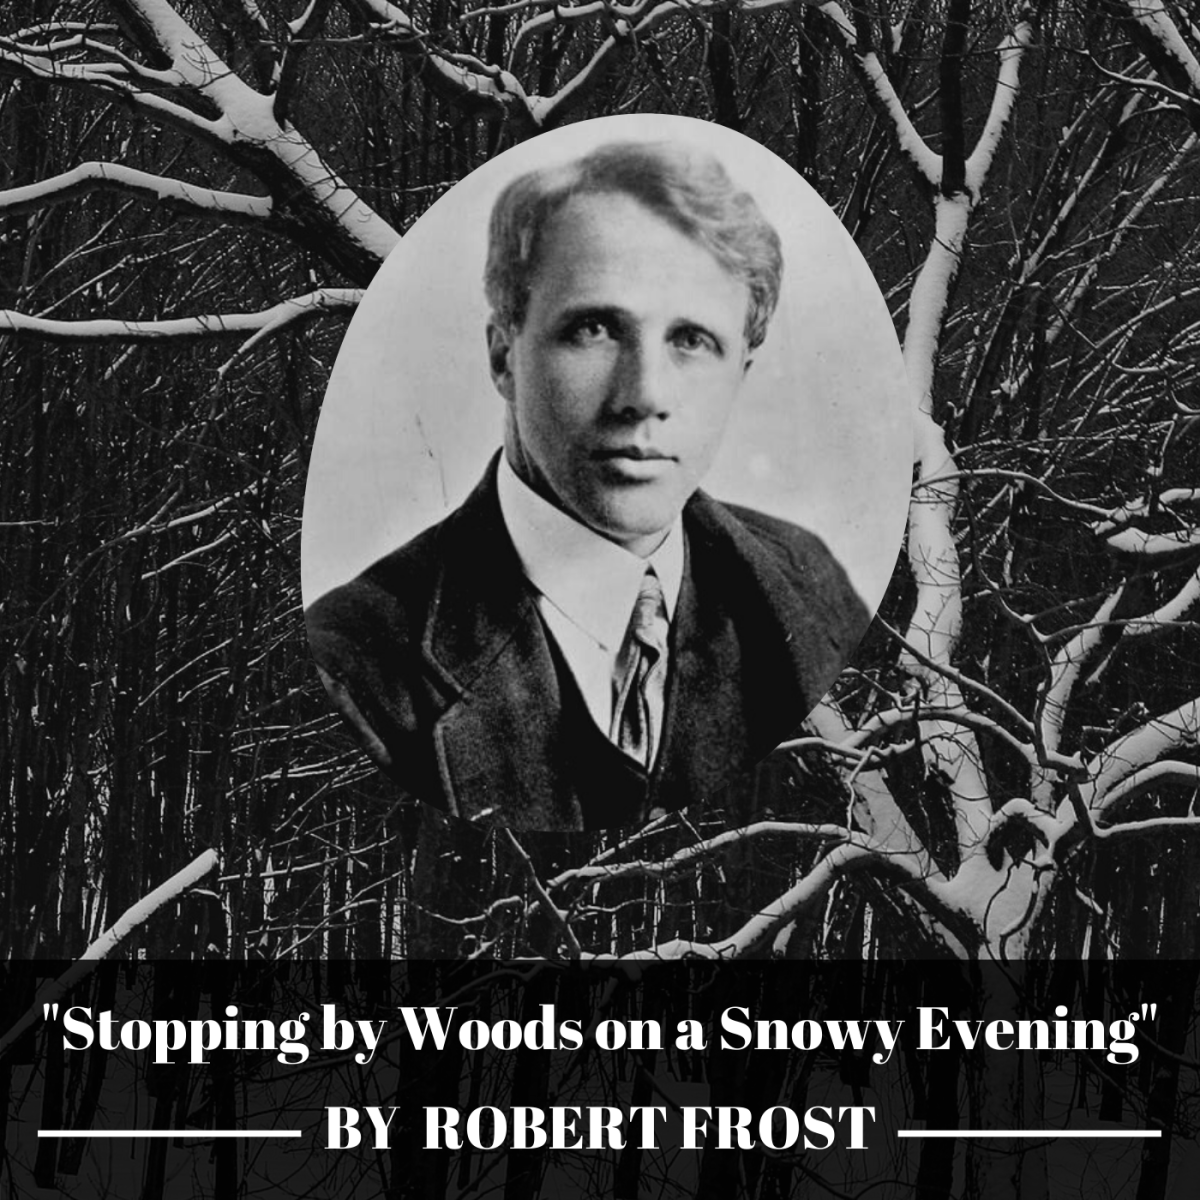 """Robert Frost's """"Stopping by Woods on a Snowy Evening"""" is one of the most beloved and mystifying poems in the American canon."""